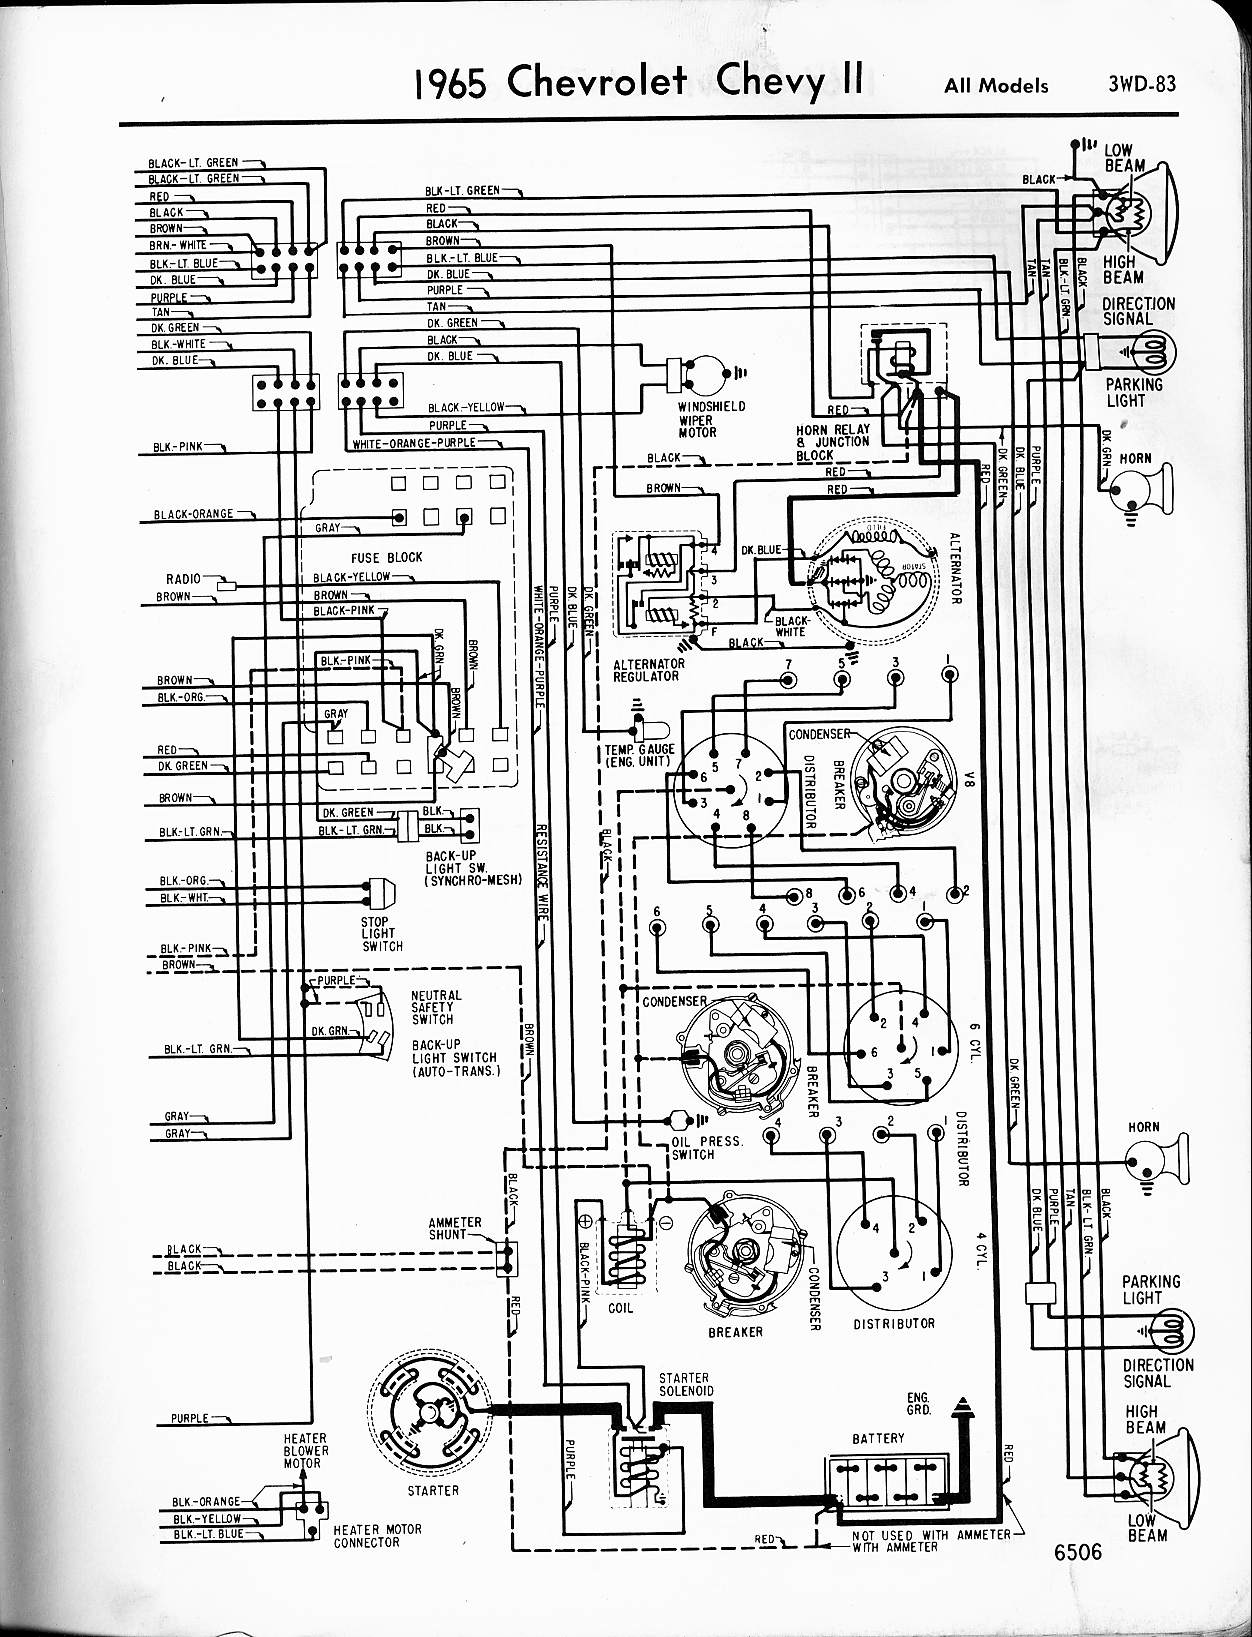 chevy diagrams rh wiring wizard com 1965 chevy c10 wiring diagram 1965 chevy c10 wiring diagram